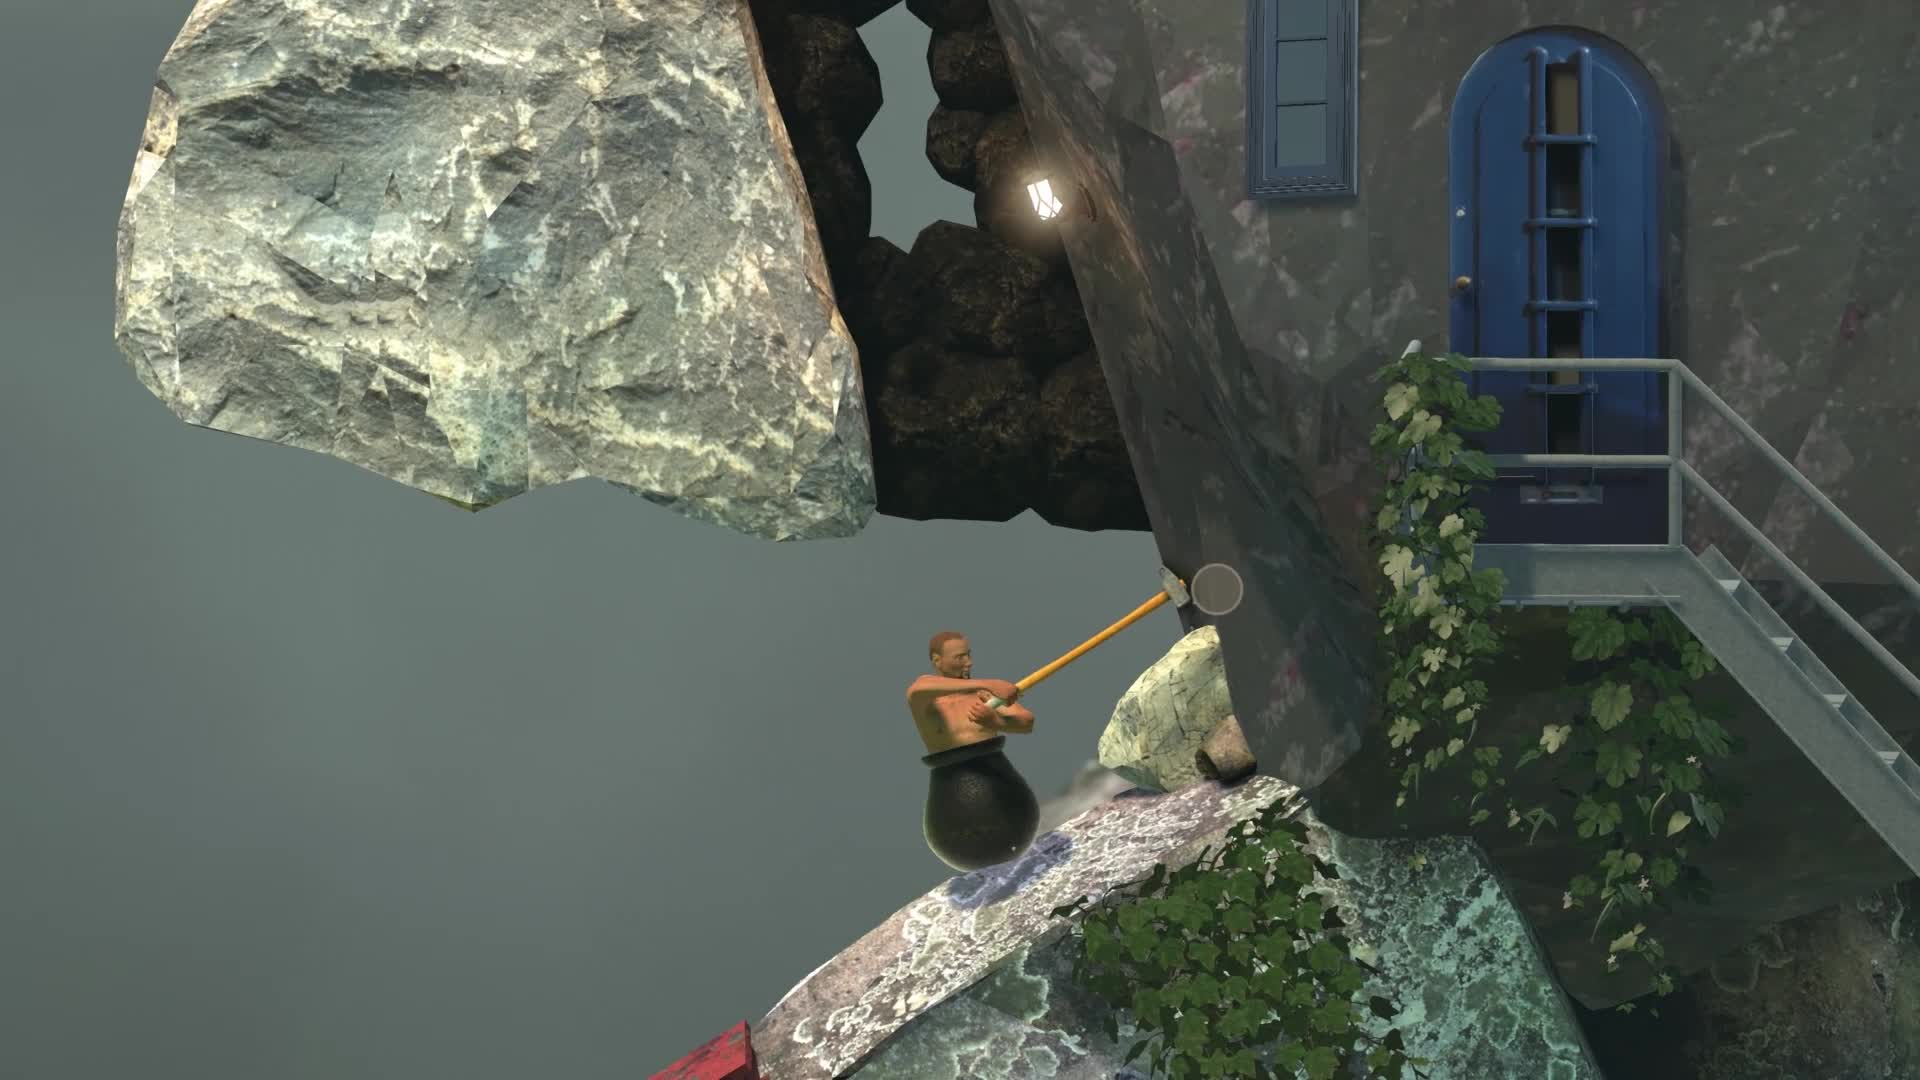 Getting over it GIFs